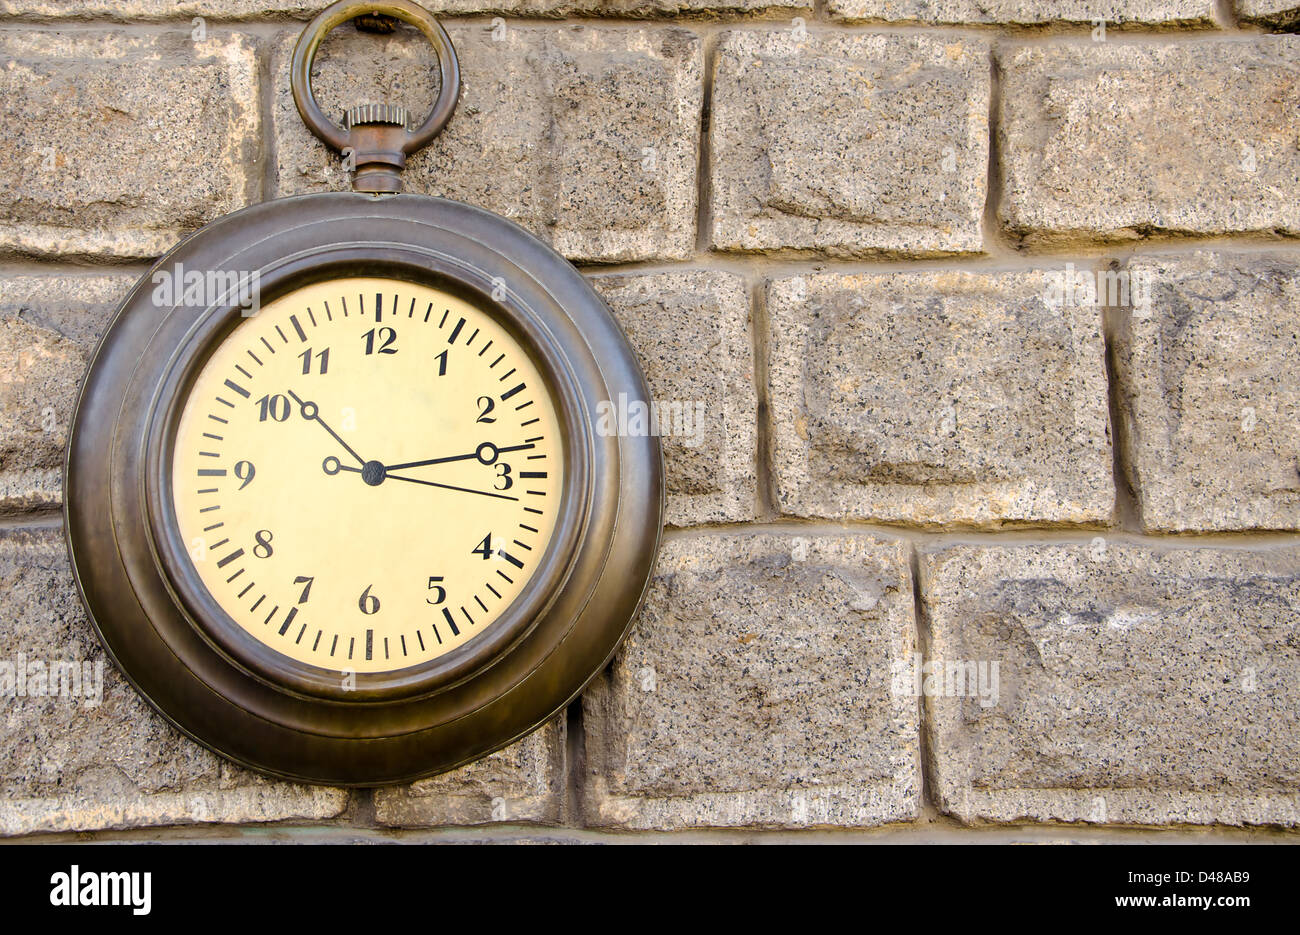 Old metal clock on a stone wall, Old Town, Plovdiv, Bulgaria, Balkans, Eastern Europe - Stock Image